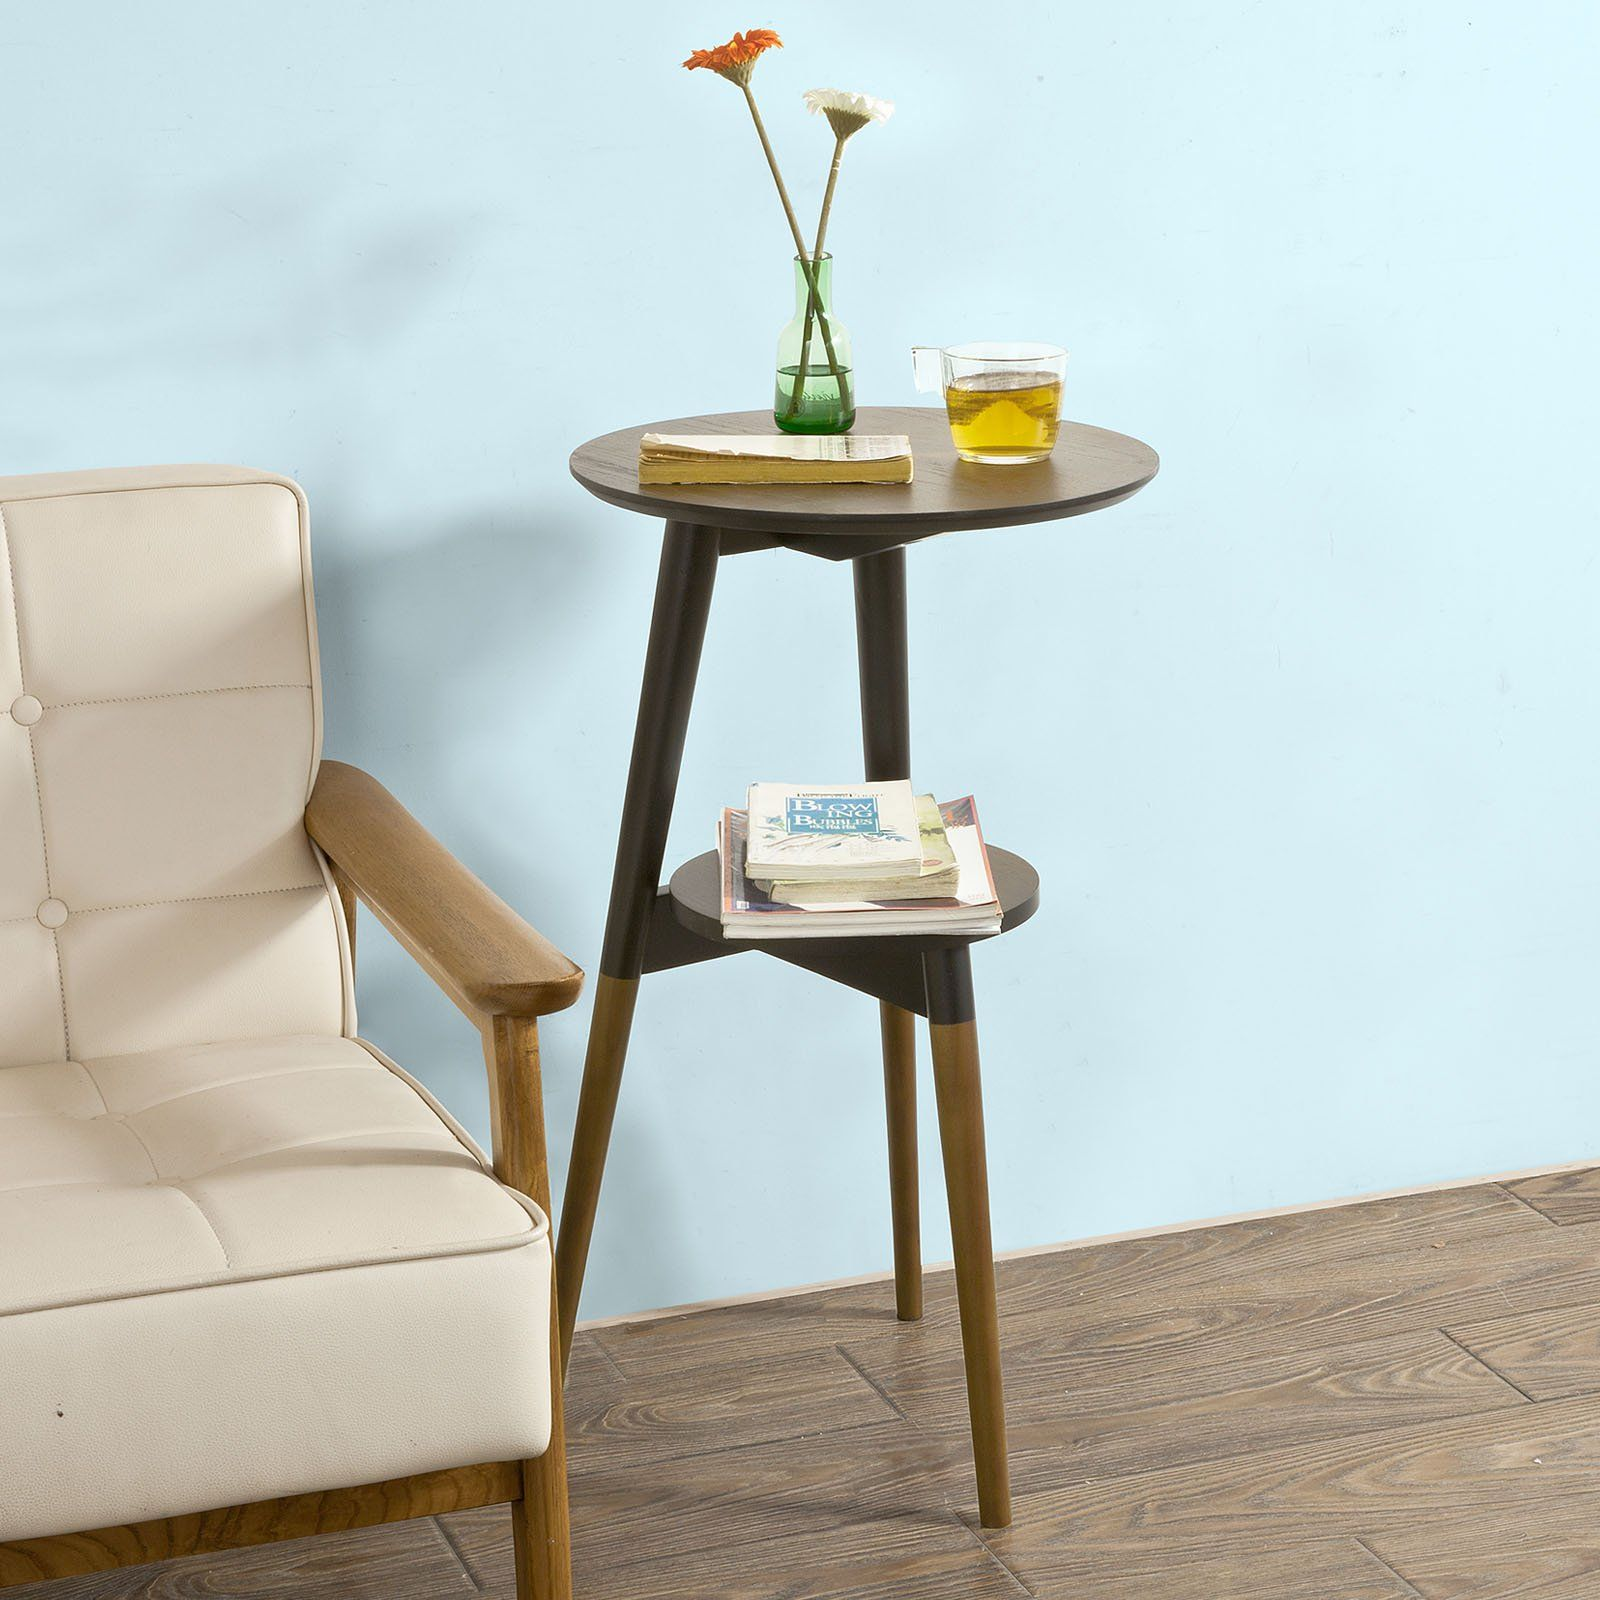 30+ Two tier coffee table uk inspirations